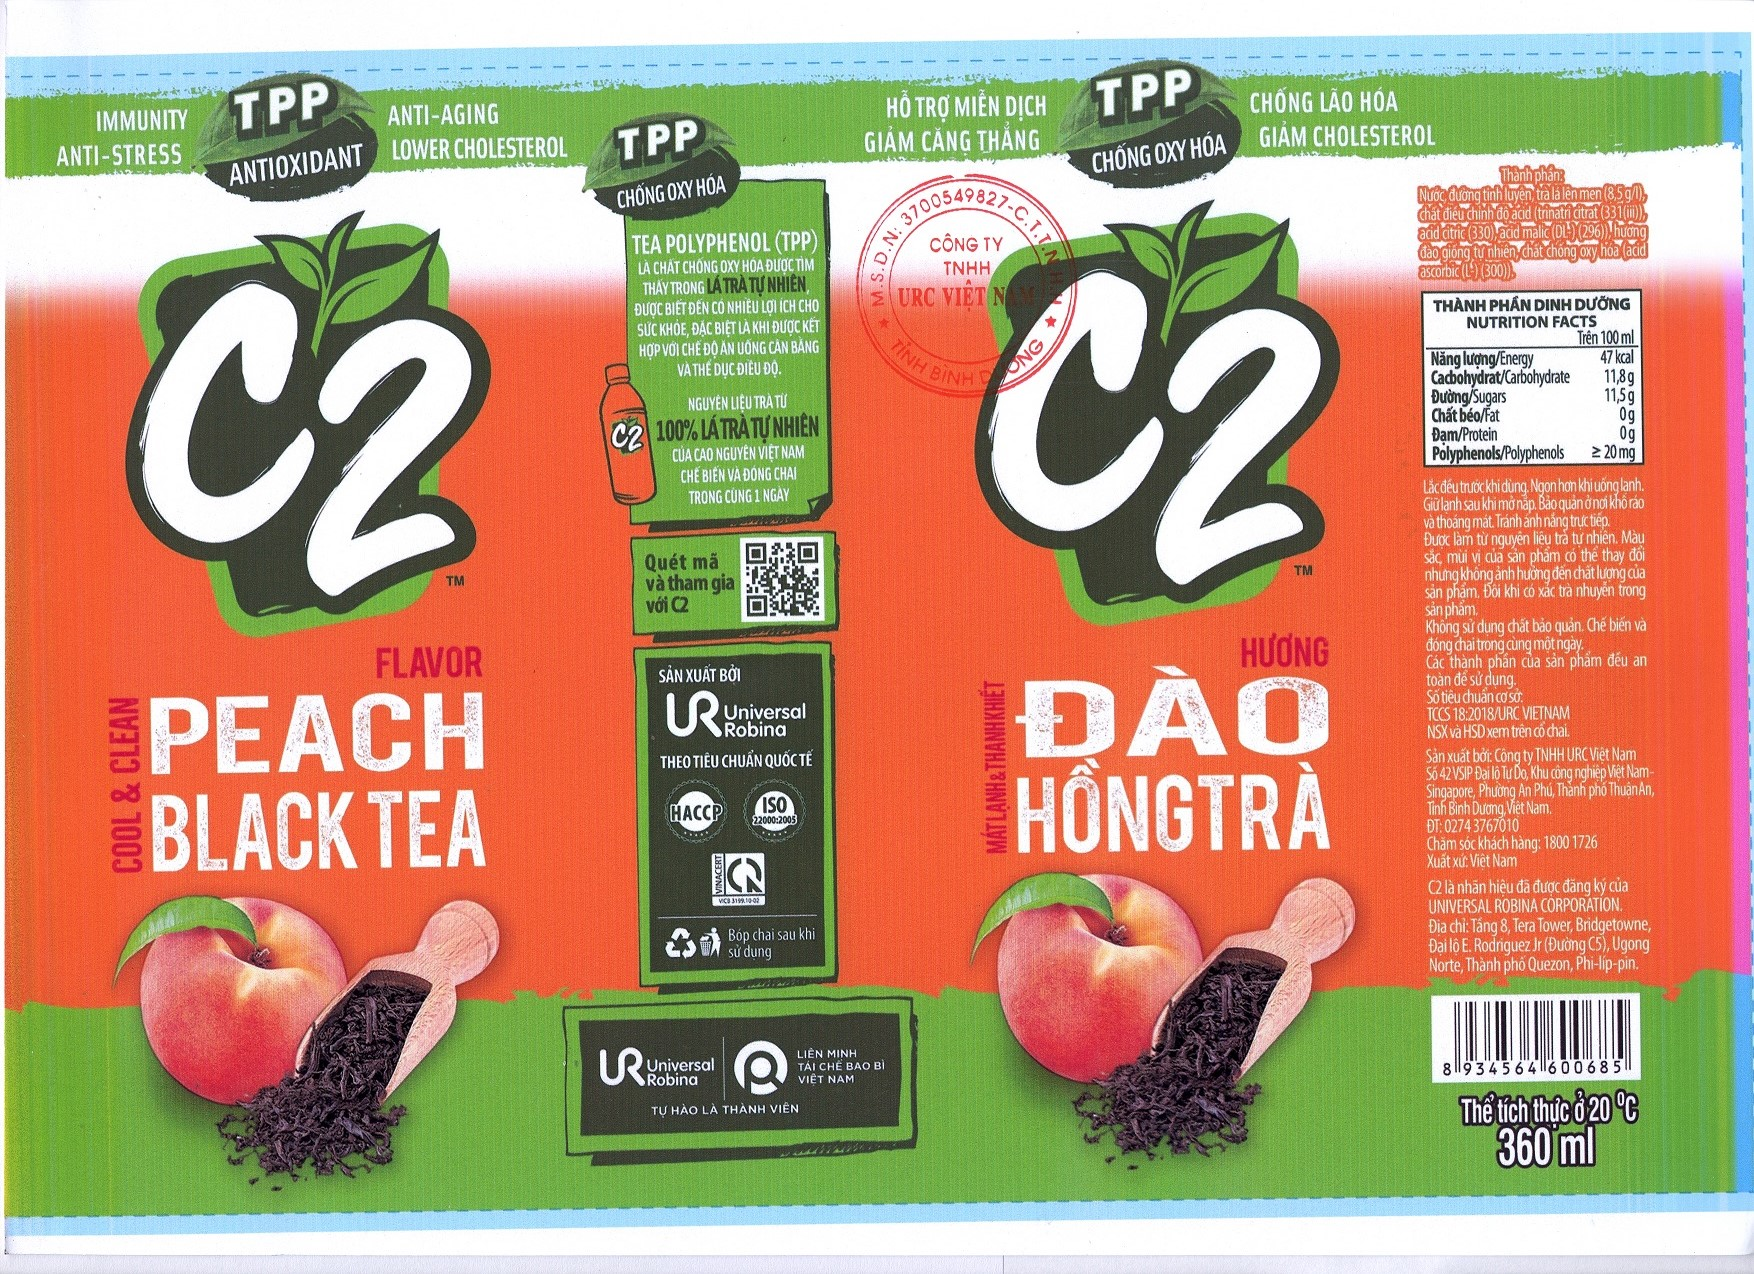 PRODUCT ANNOUNCEMENT C2 BLACK TEA PEACH FLAVOR